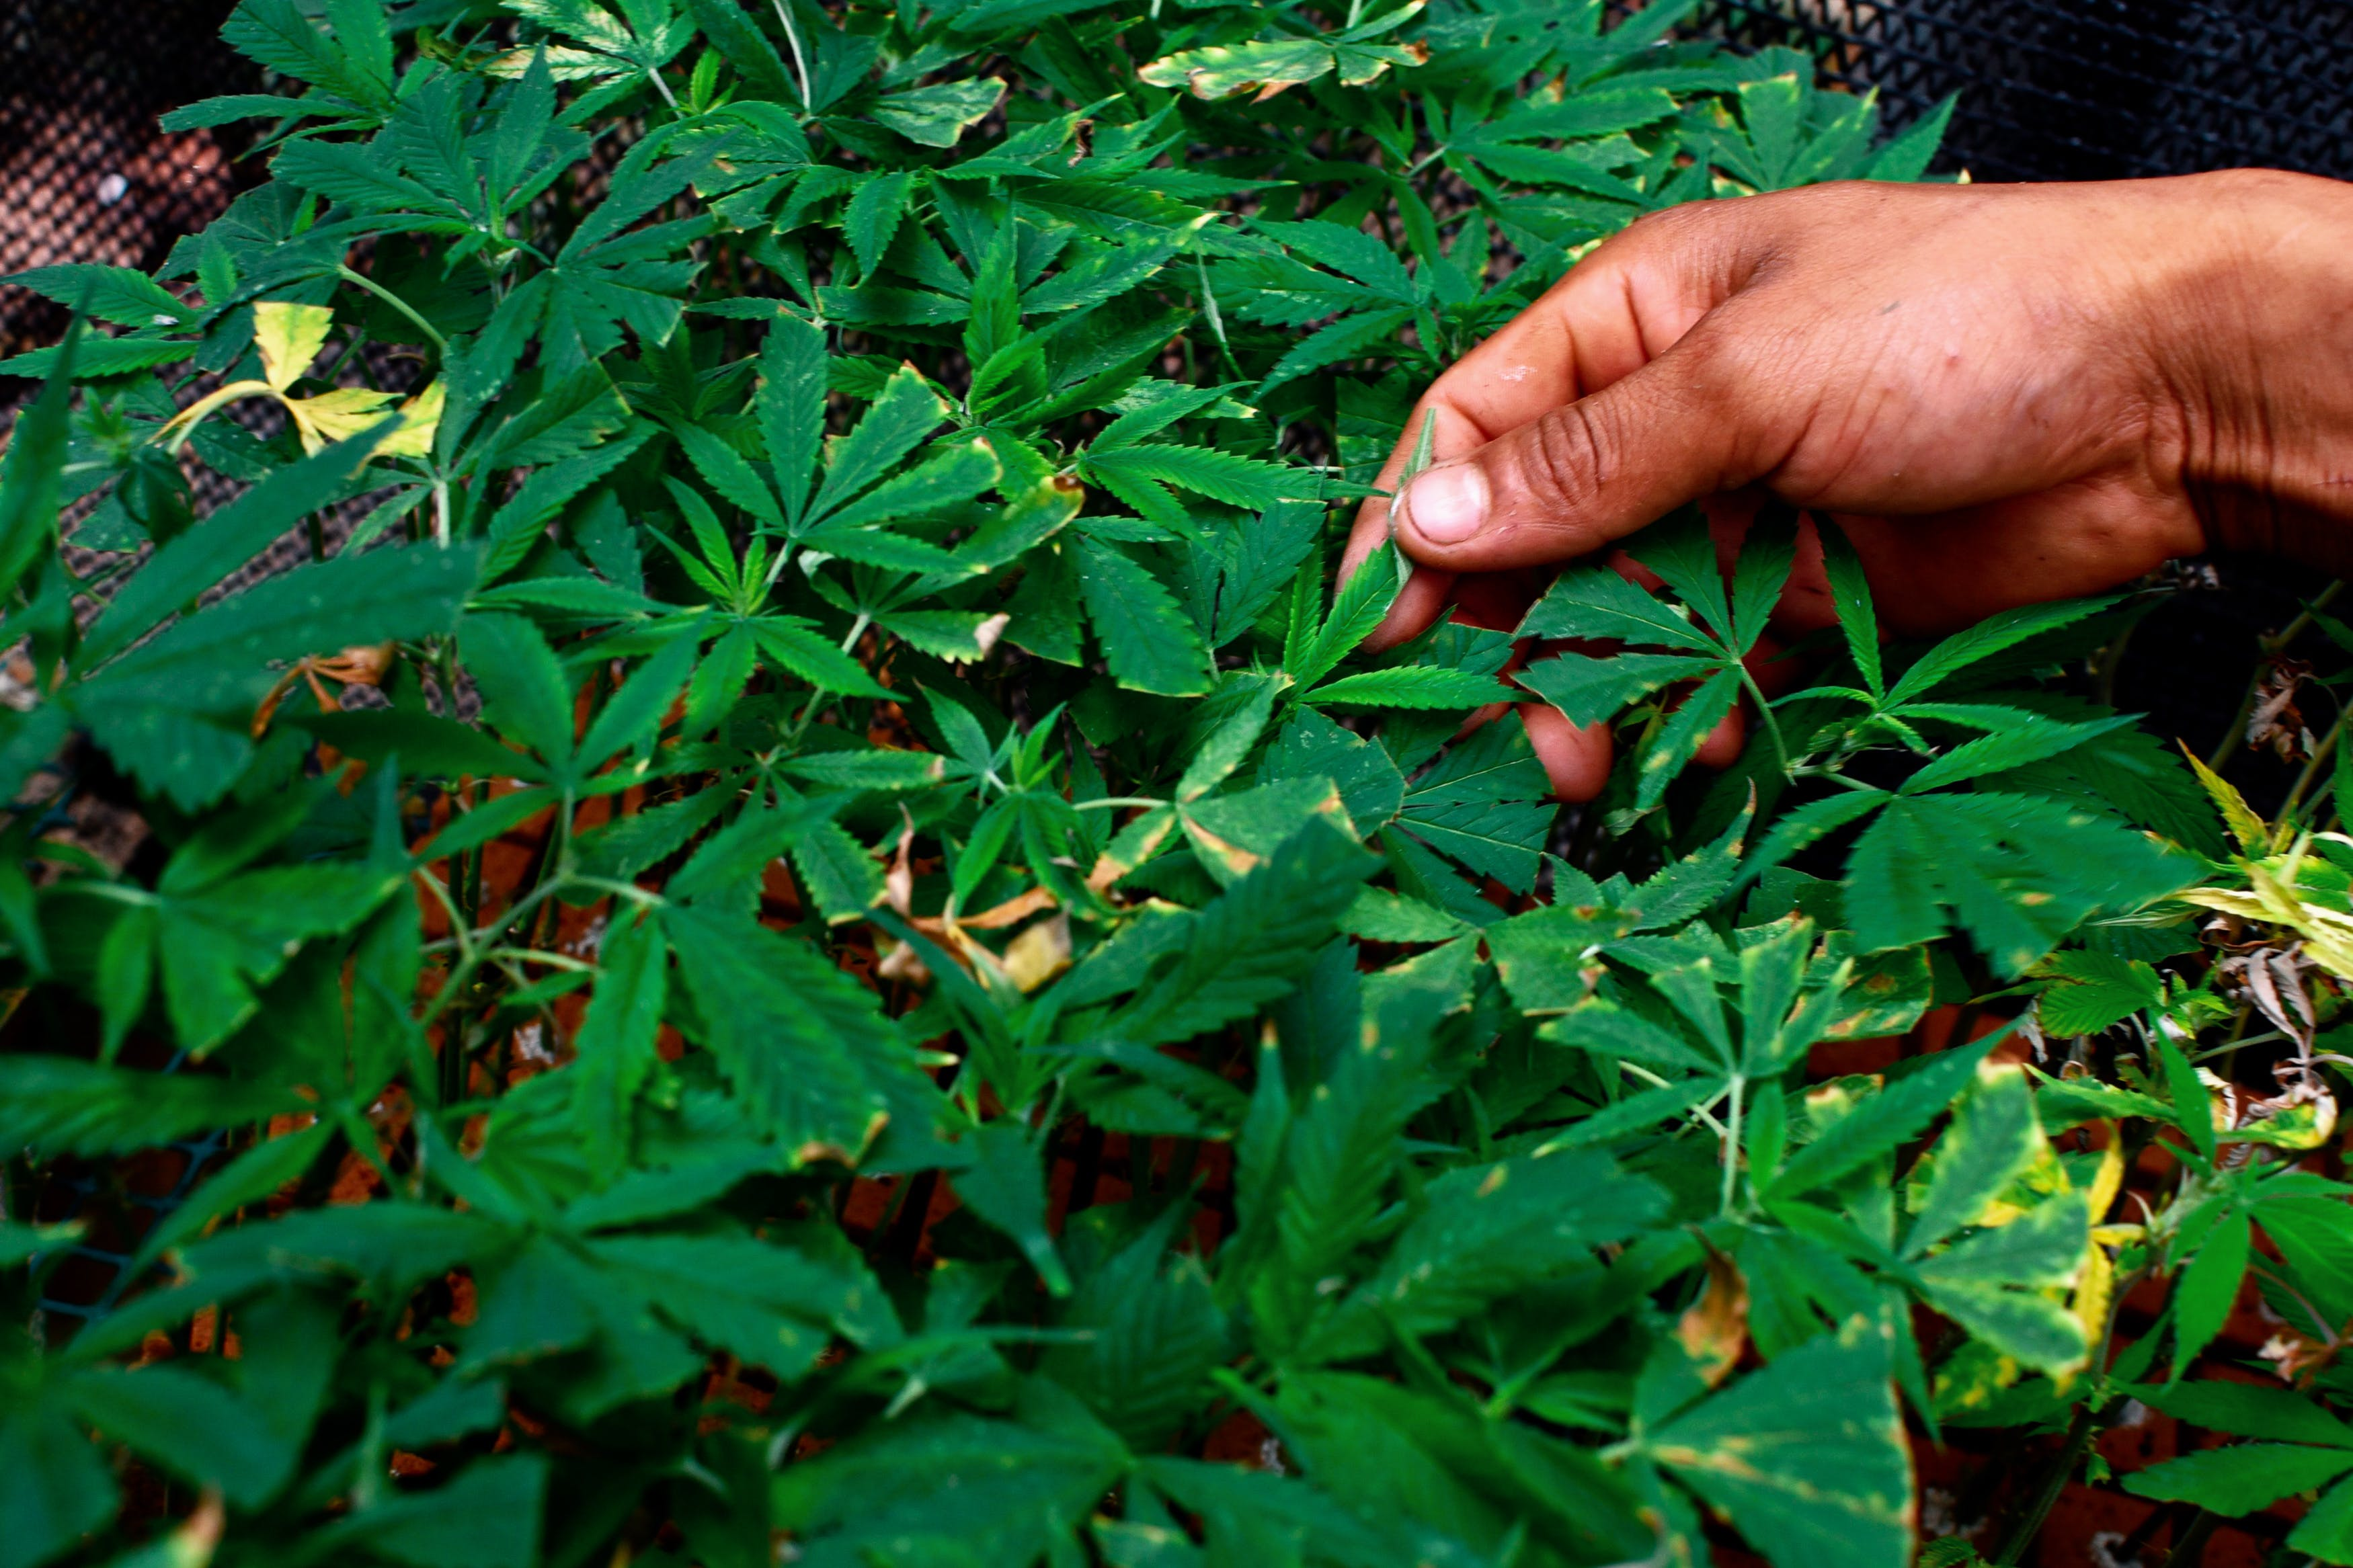 Here, a weed plant with a cannabis disease is shown. In this article, we feature the common cannabis diseases including powdery mildew and gray spot